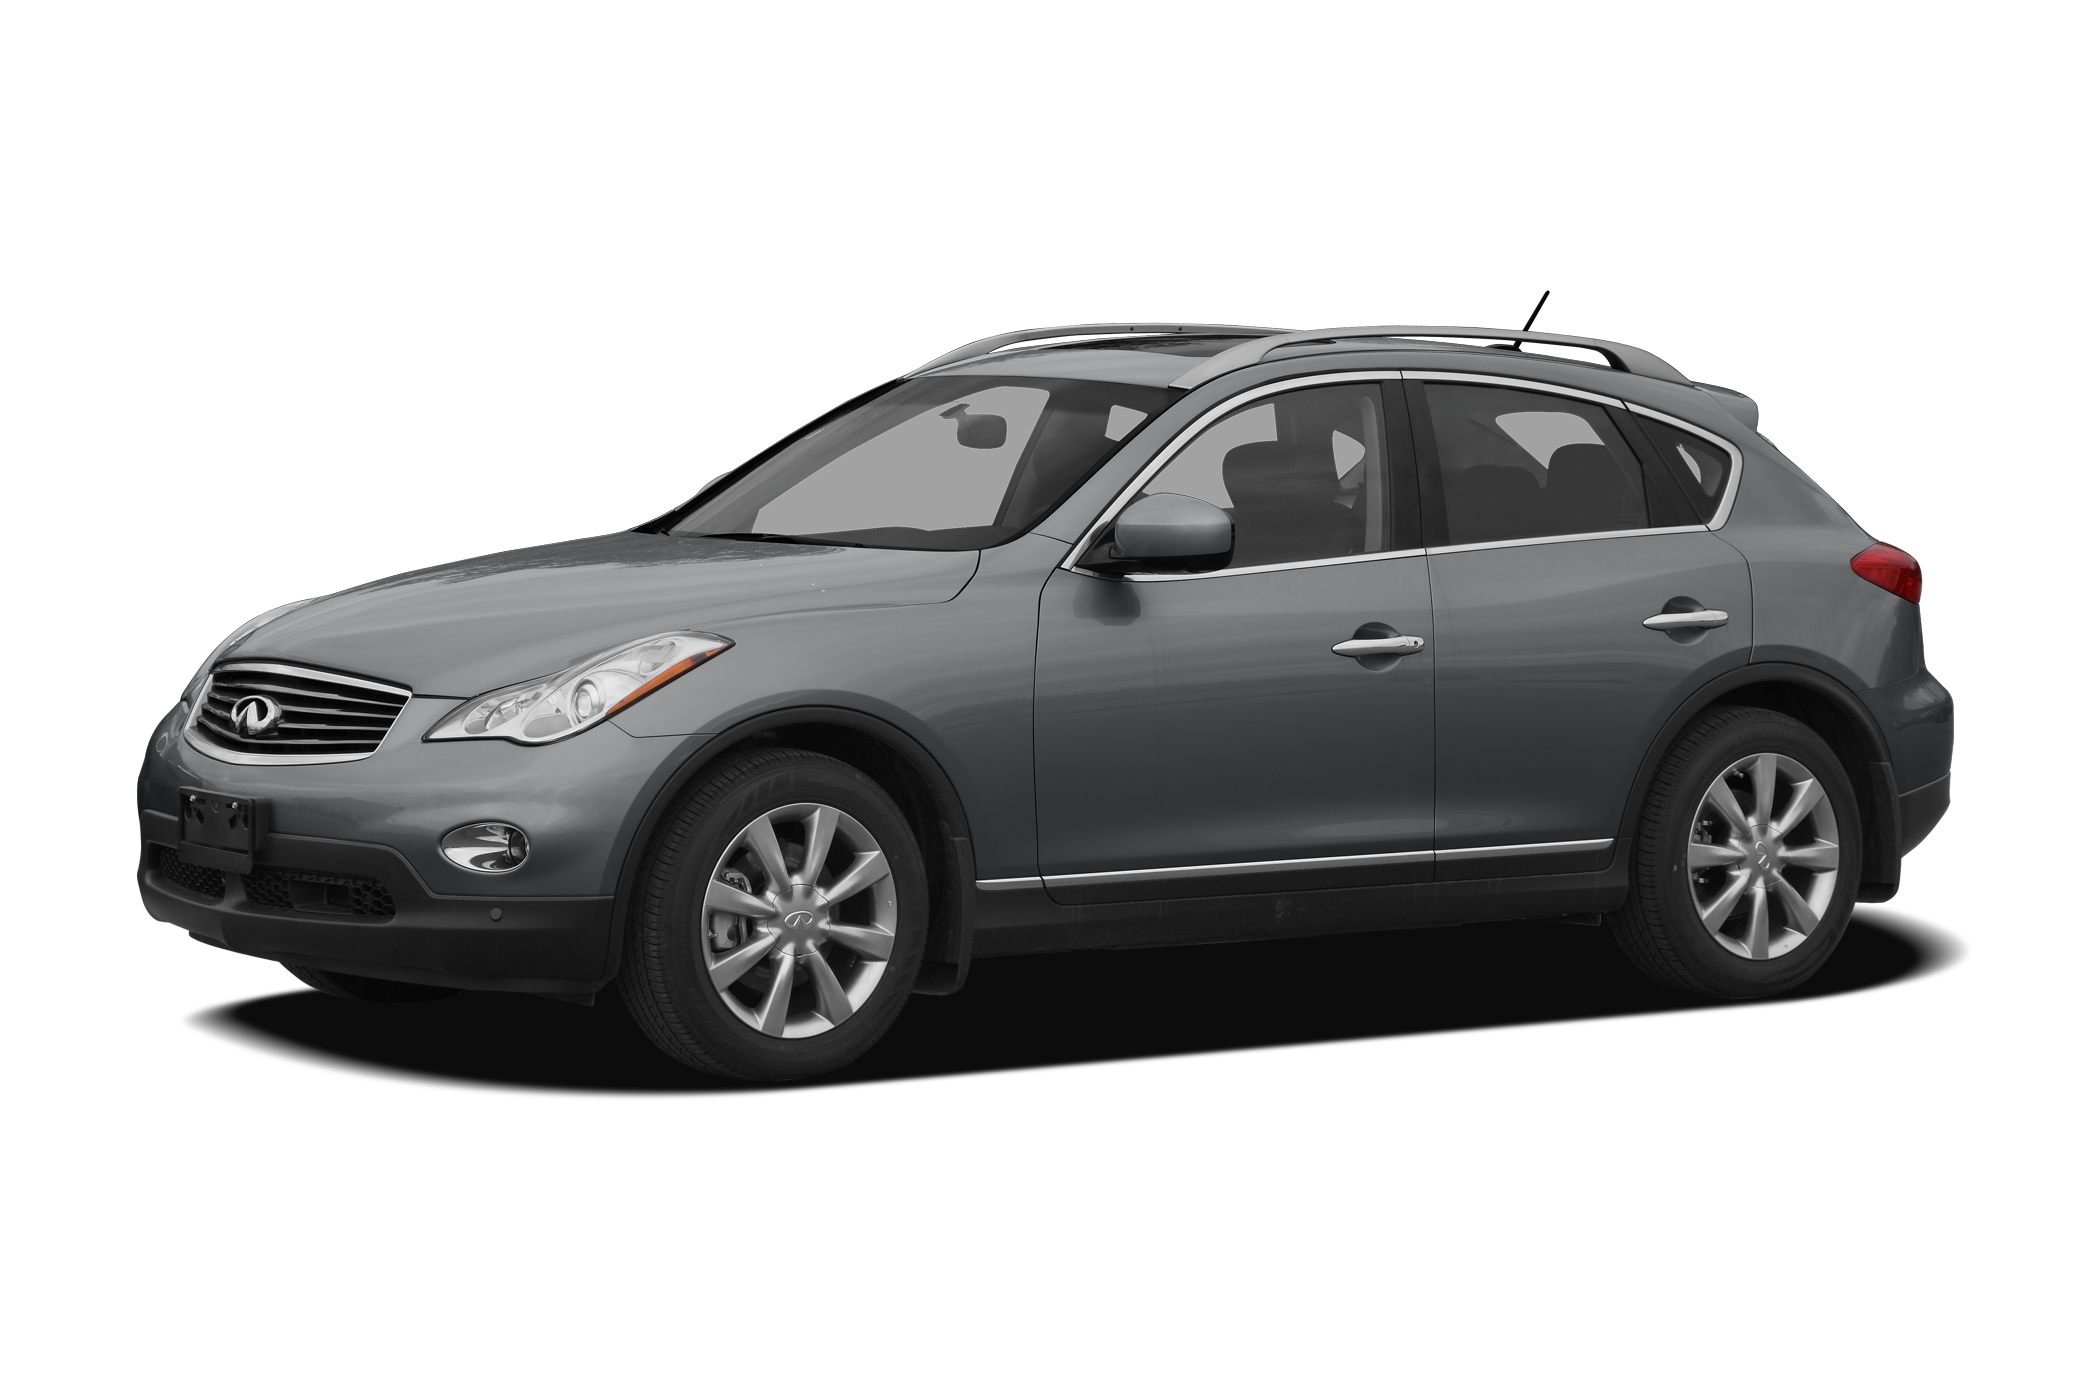 2008 Infiniti EX35 Wagon for sale in Lansdale for $16,890 with 63,407 miles.